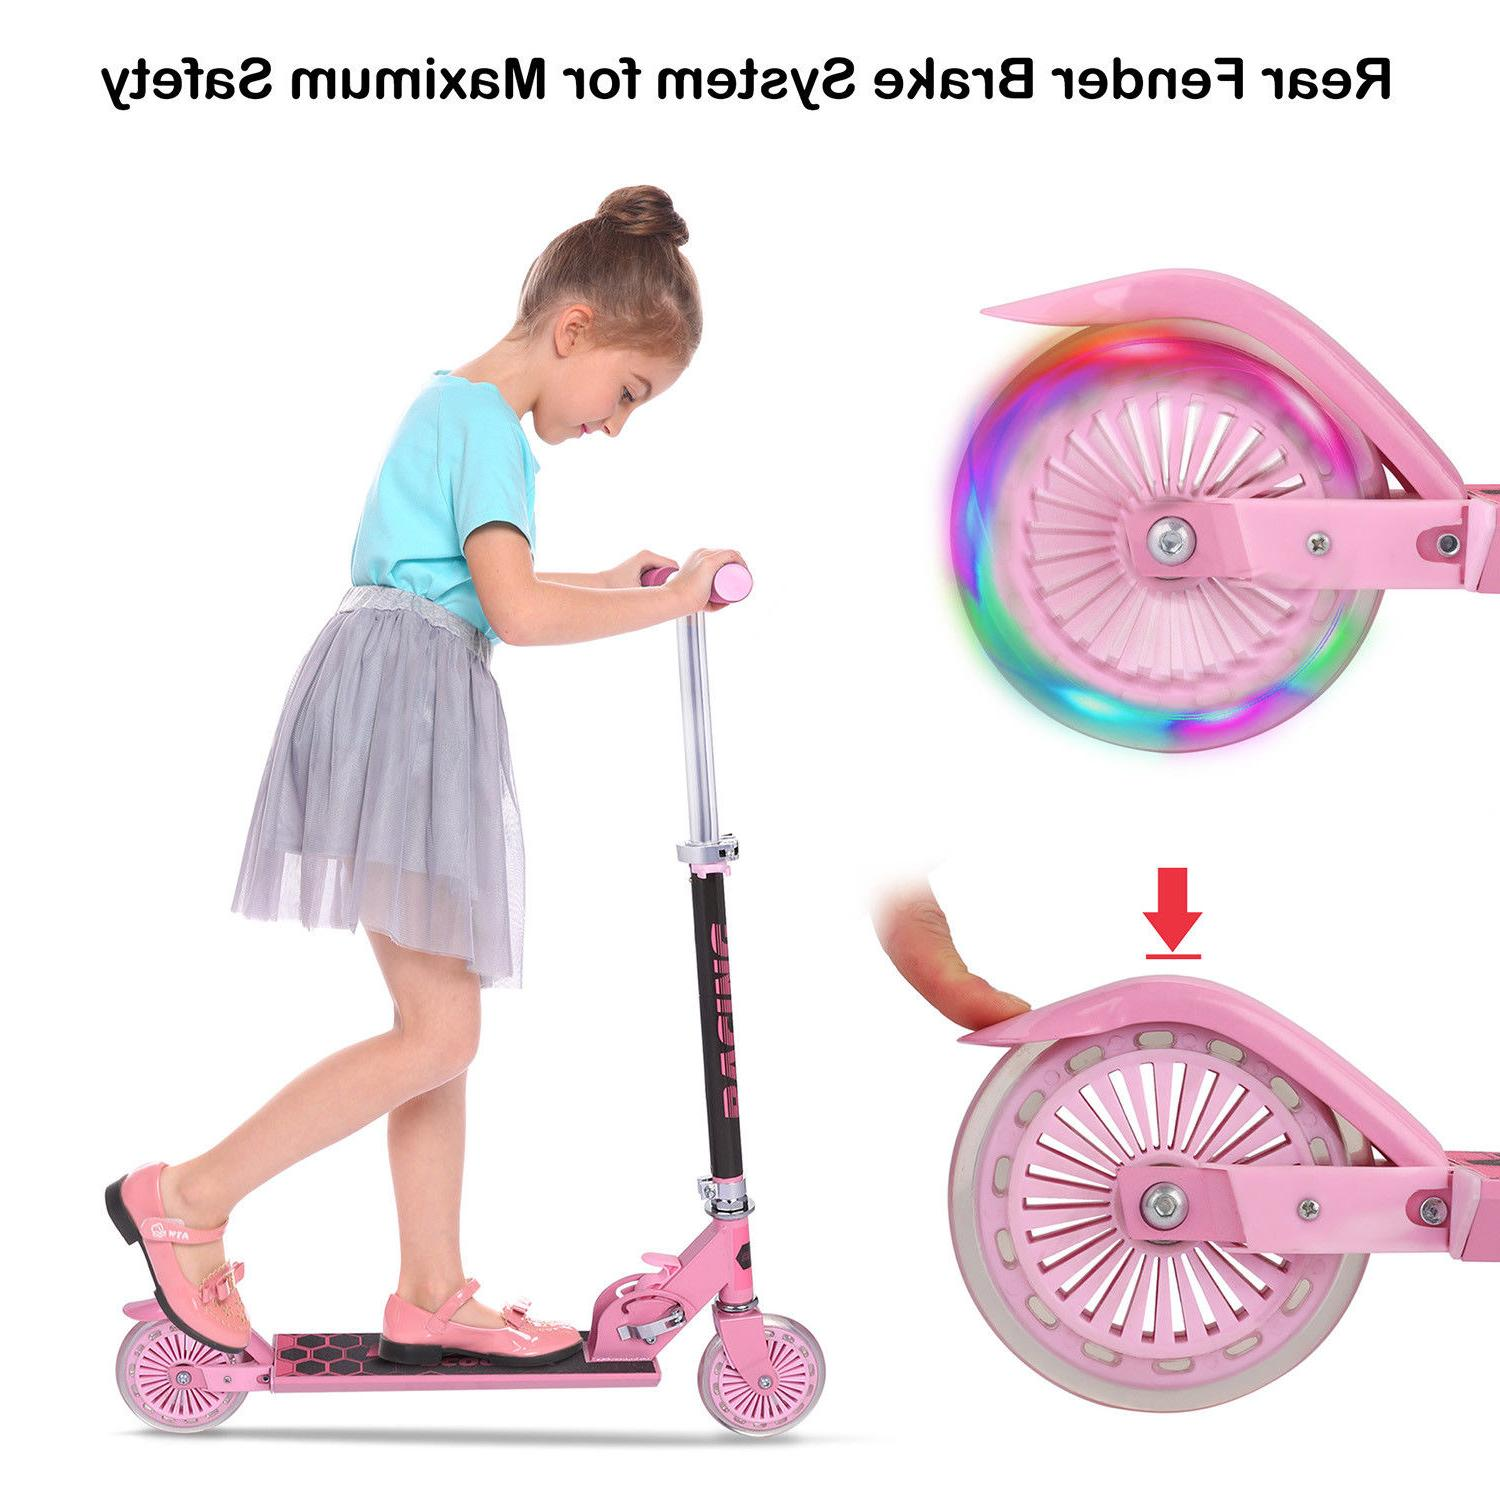 3 Wheel Kick Scooter. For Kids 2-12 Ages with LED Rear Light